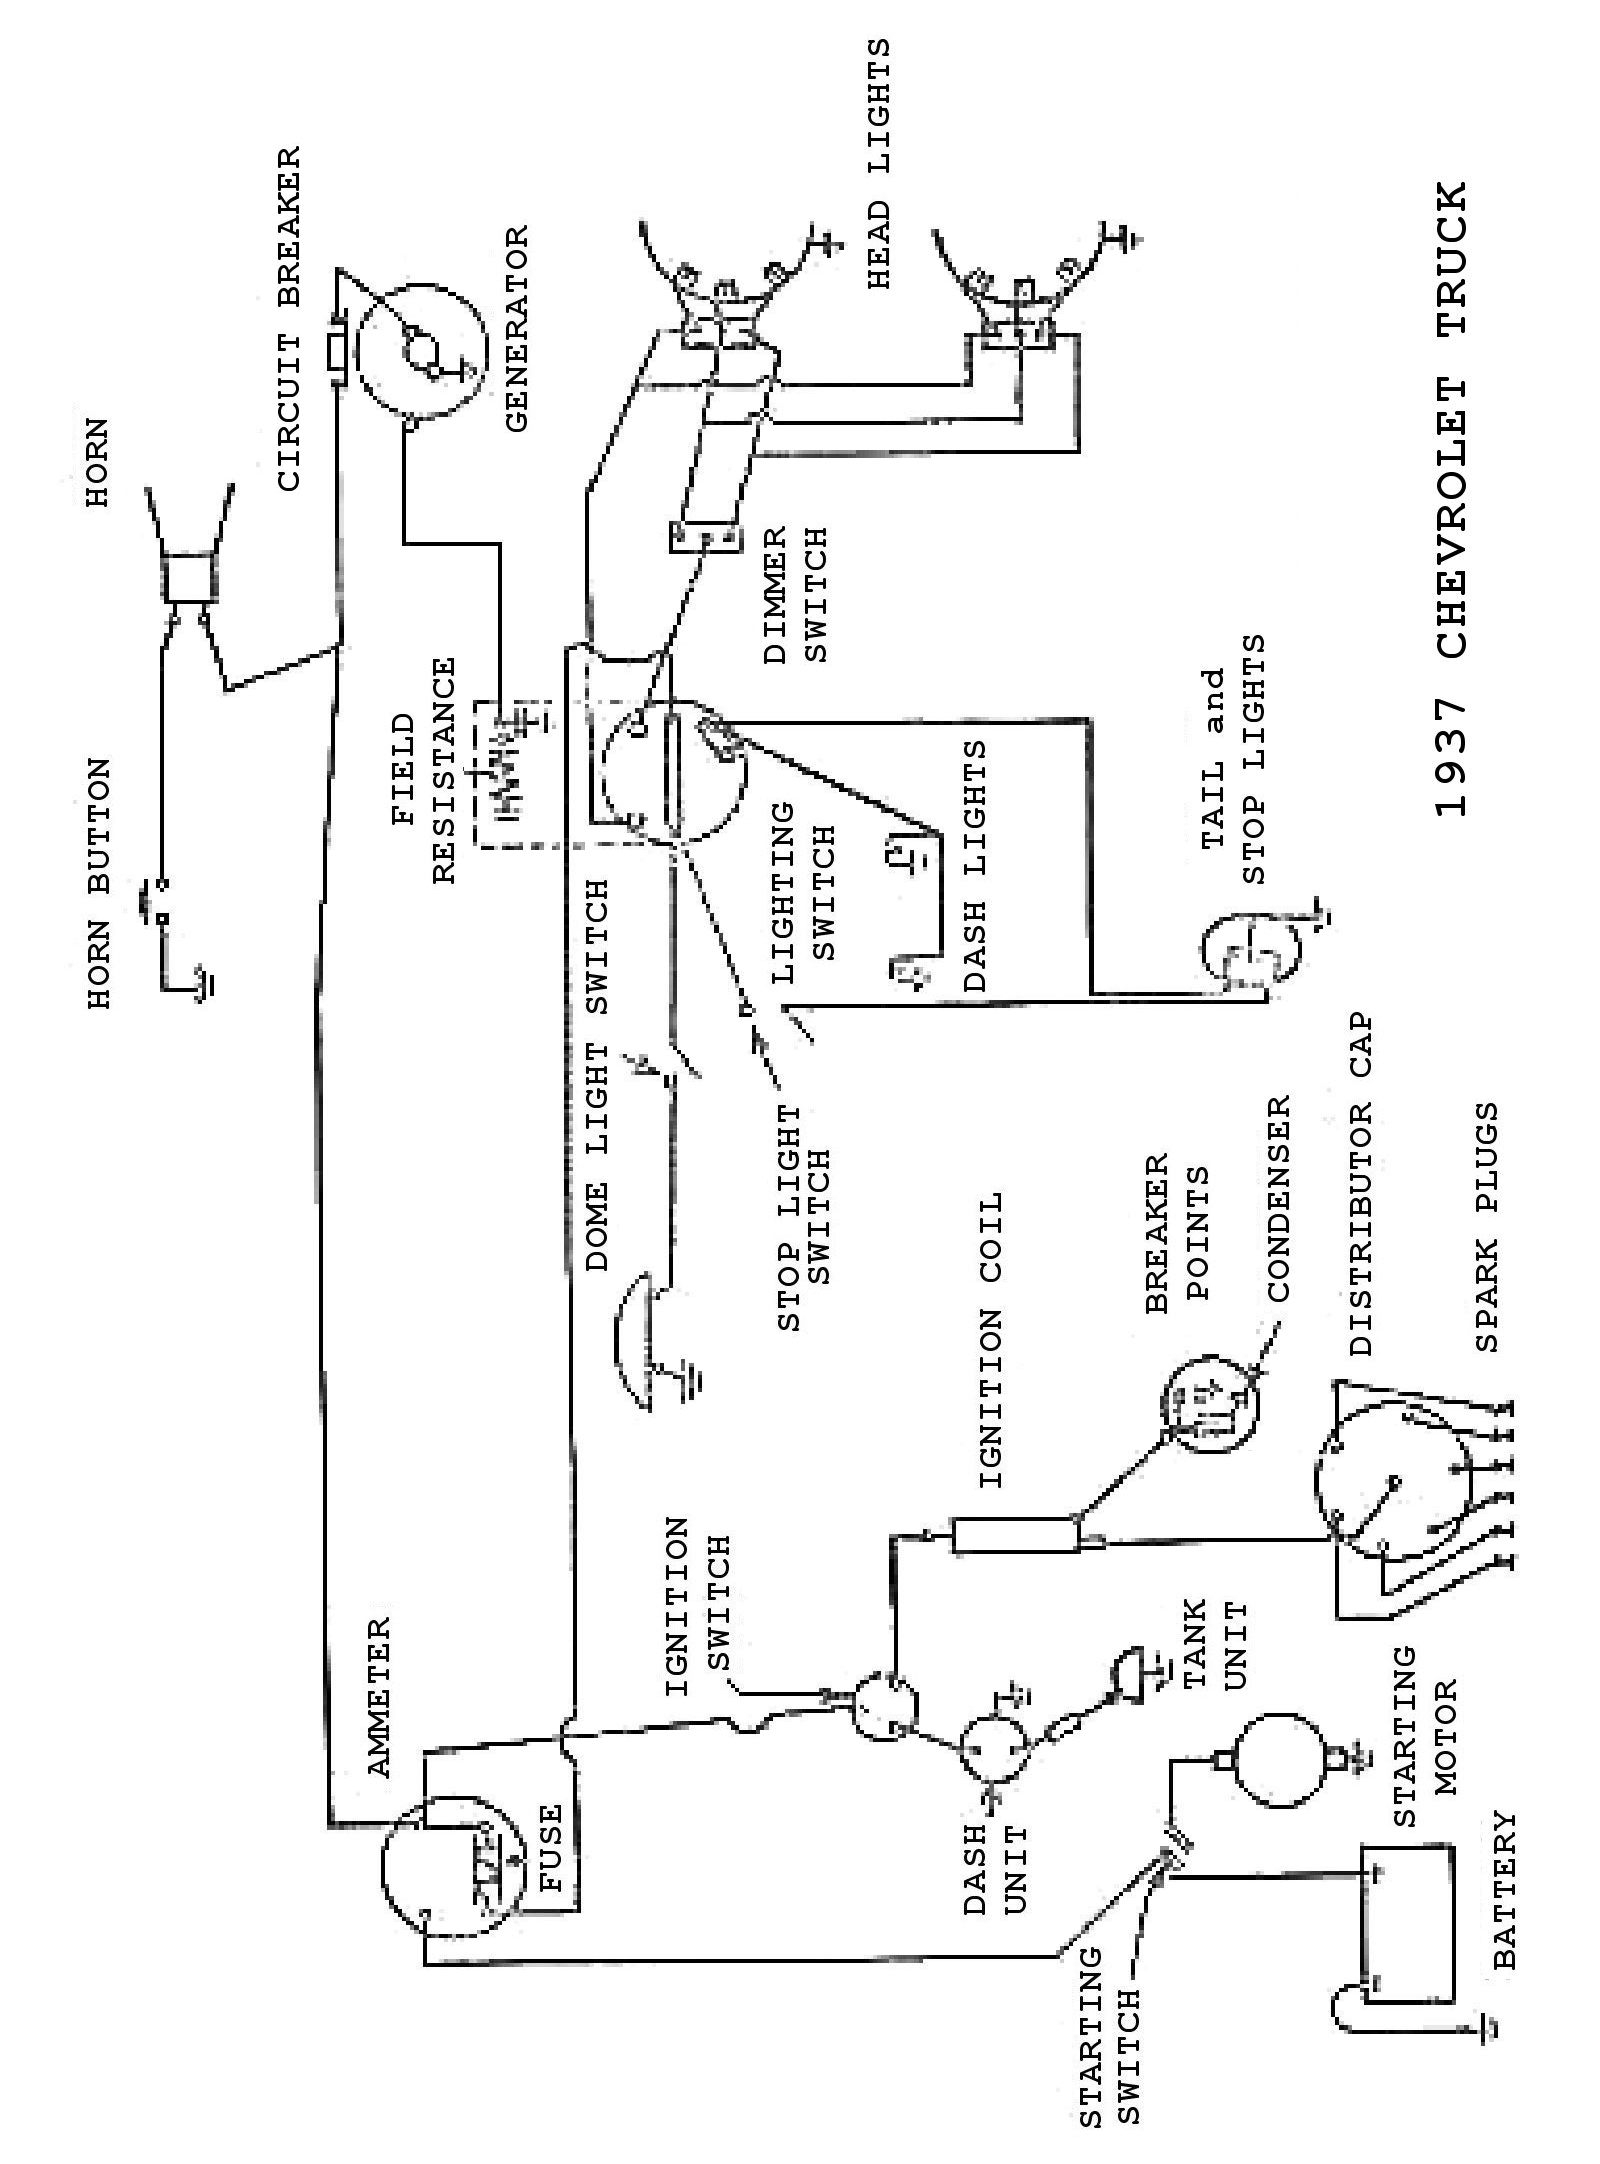 Wiring Diagram For Chevy Silverado Tail Lights